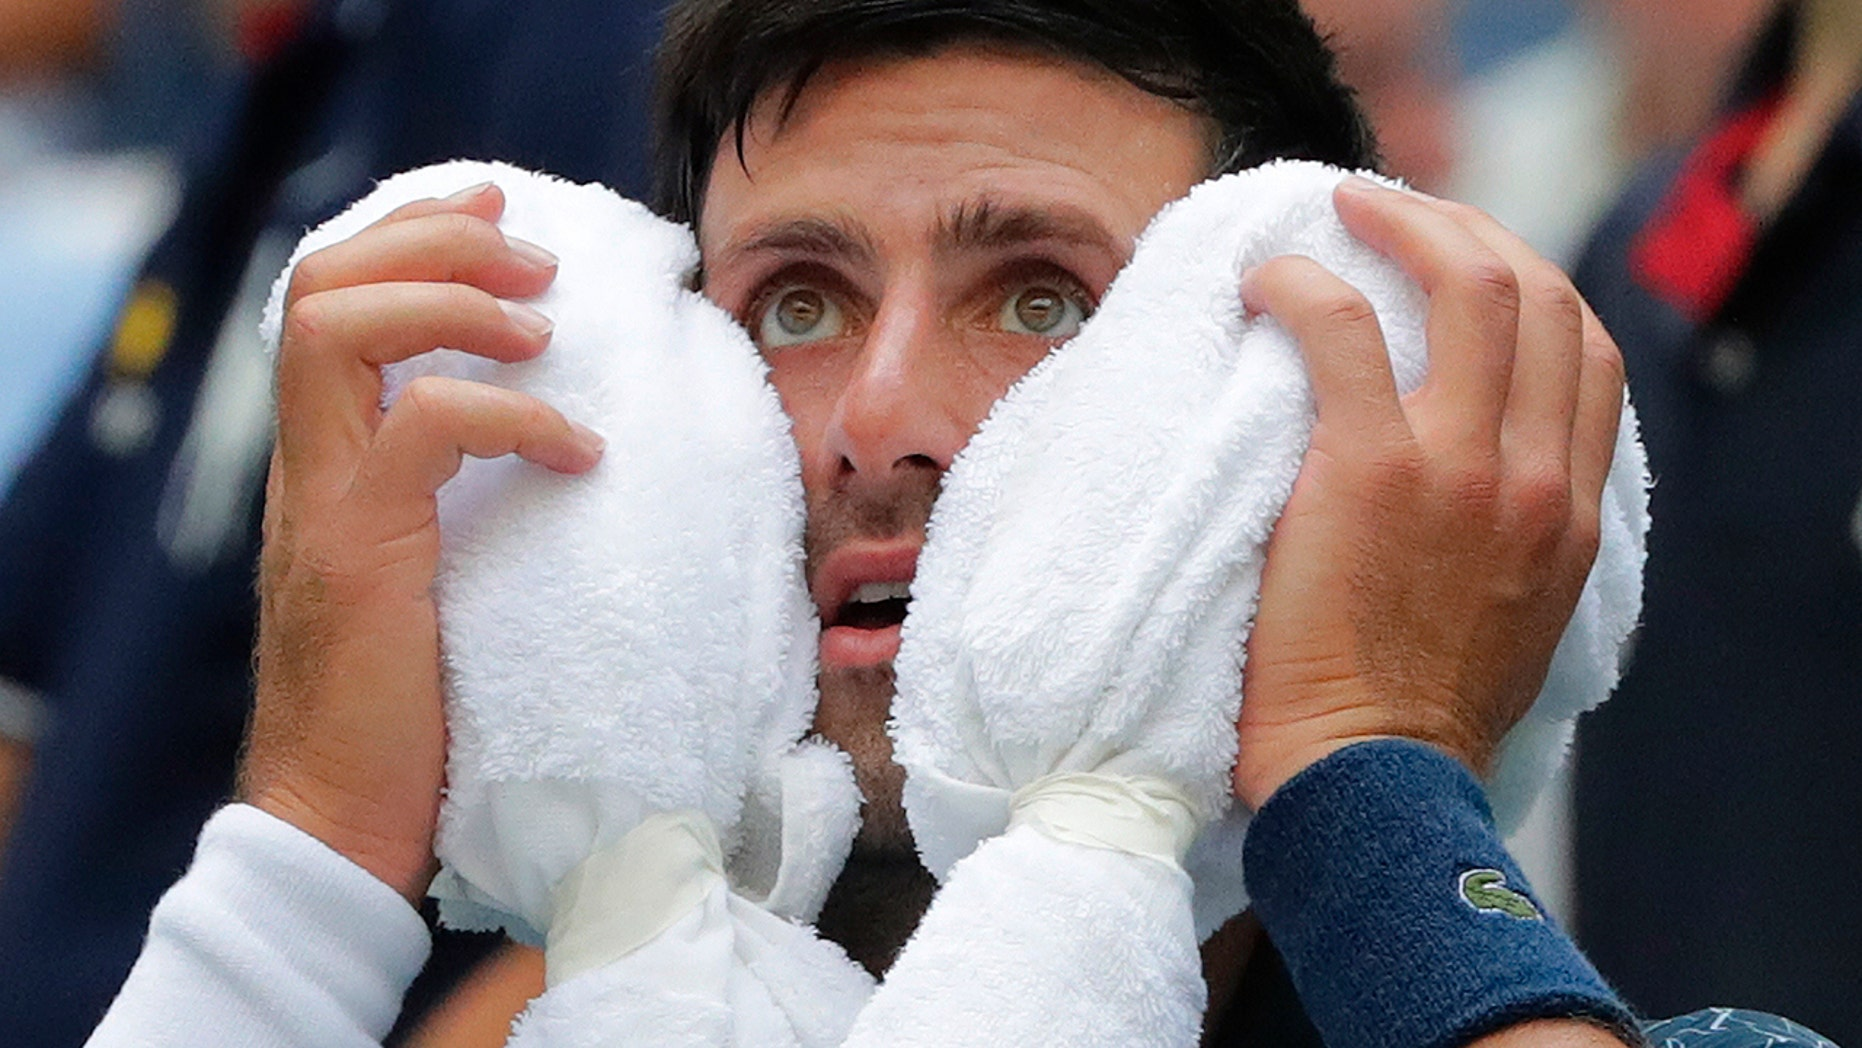 Novak Djokovic, of Serbia, puts an ice towel to his face during a changeover in his match against Marton Fucsovics, of Hungary, during the first round of the U.S. Open tennis tournament.